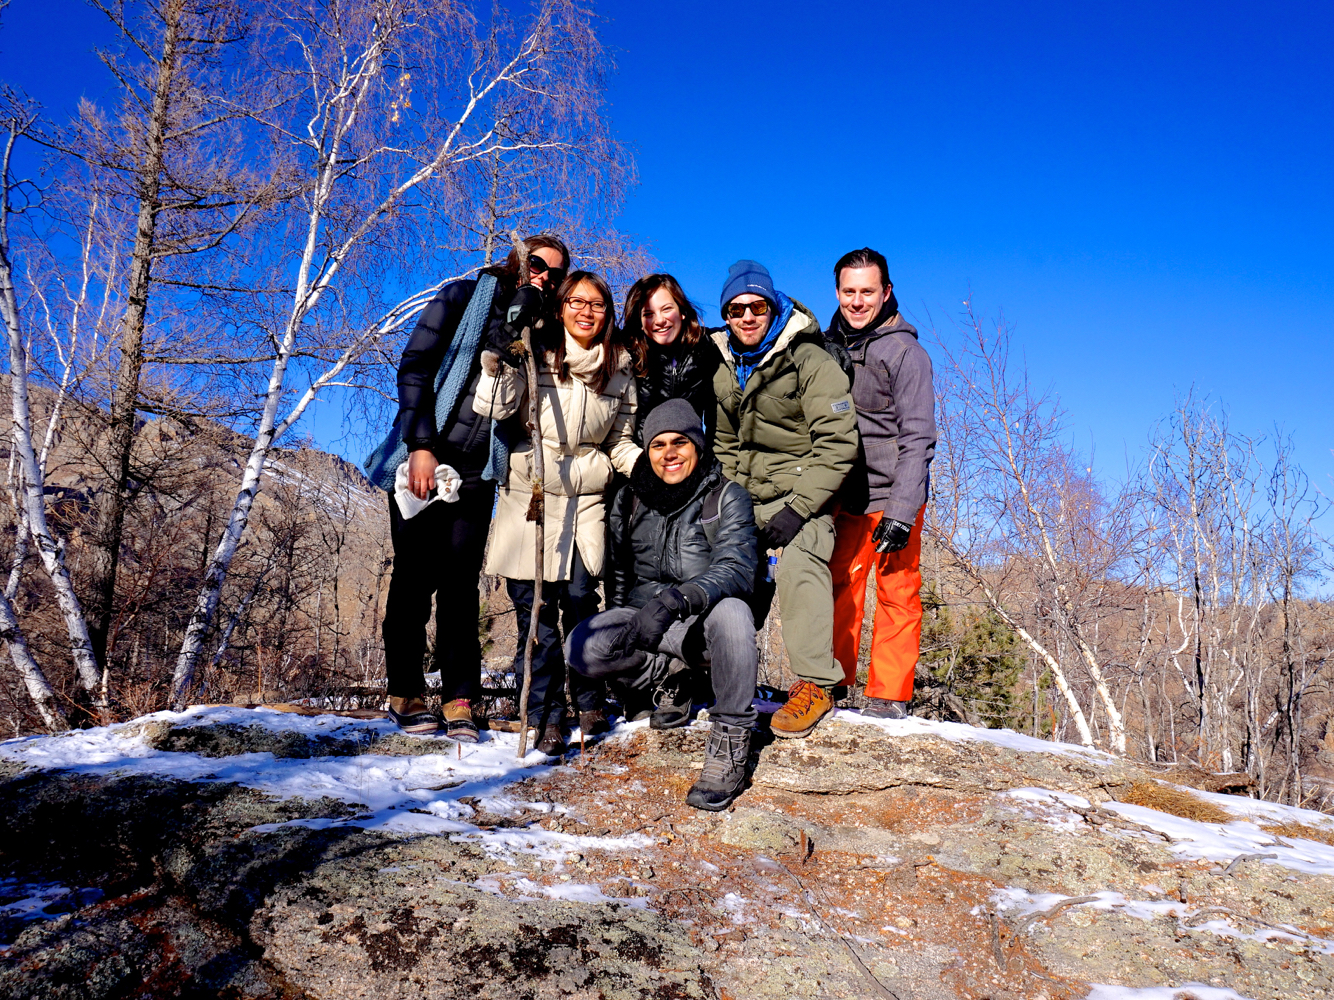 Mountaintop group shot in Terelj